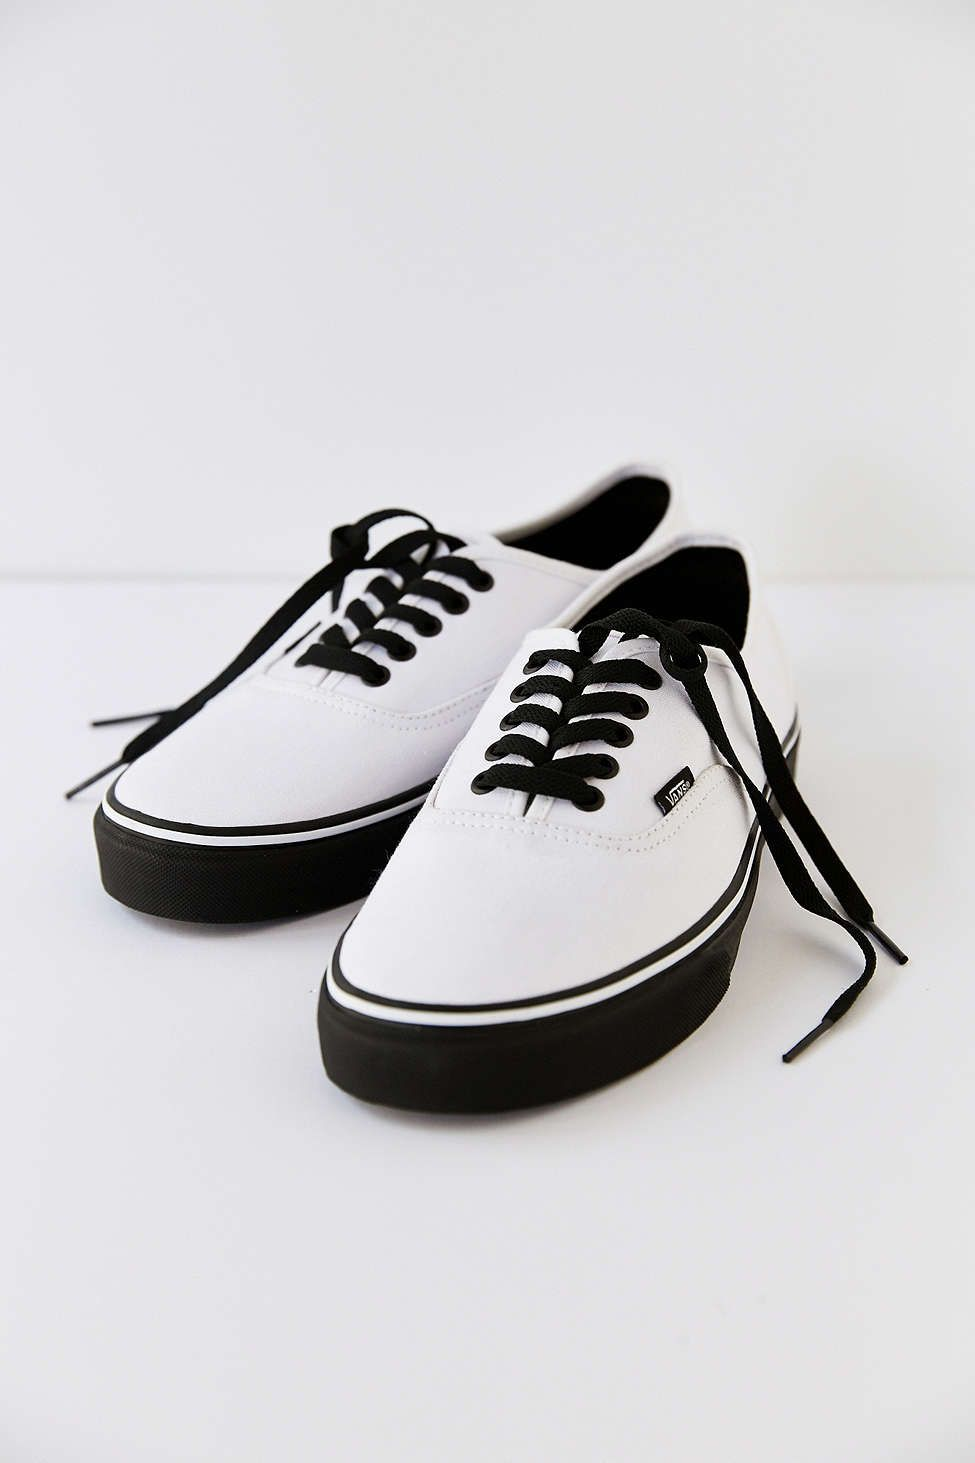 exklusiva erbjudanden heta nya produkter för hela familjen Vans Authentic Black Sole Men's Sneaker | Vans authentic black